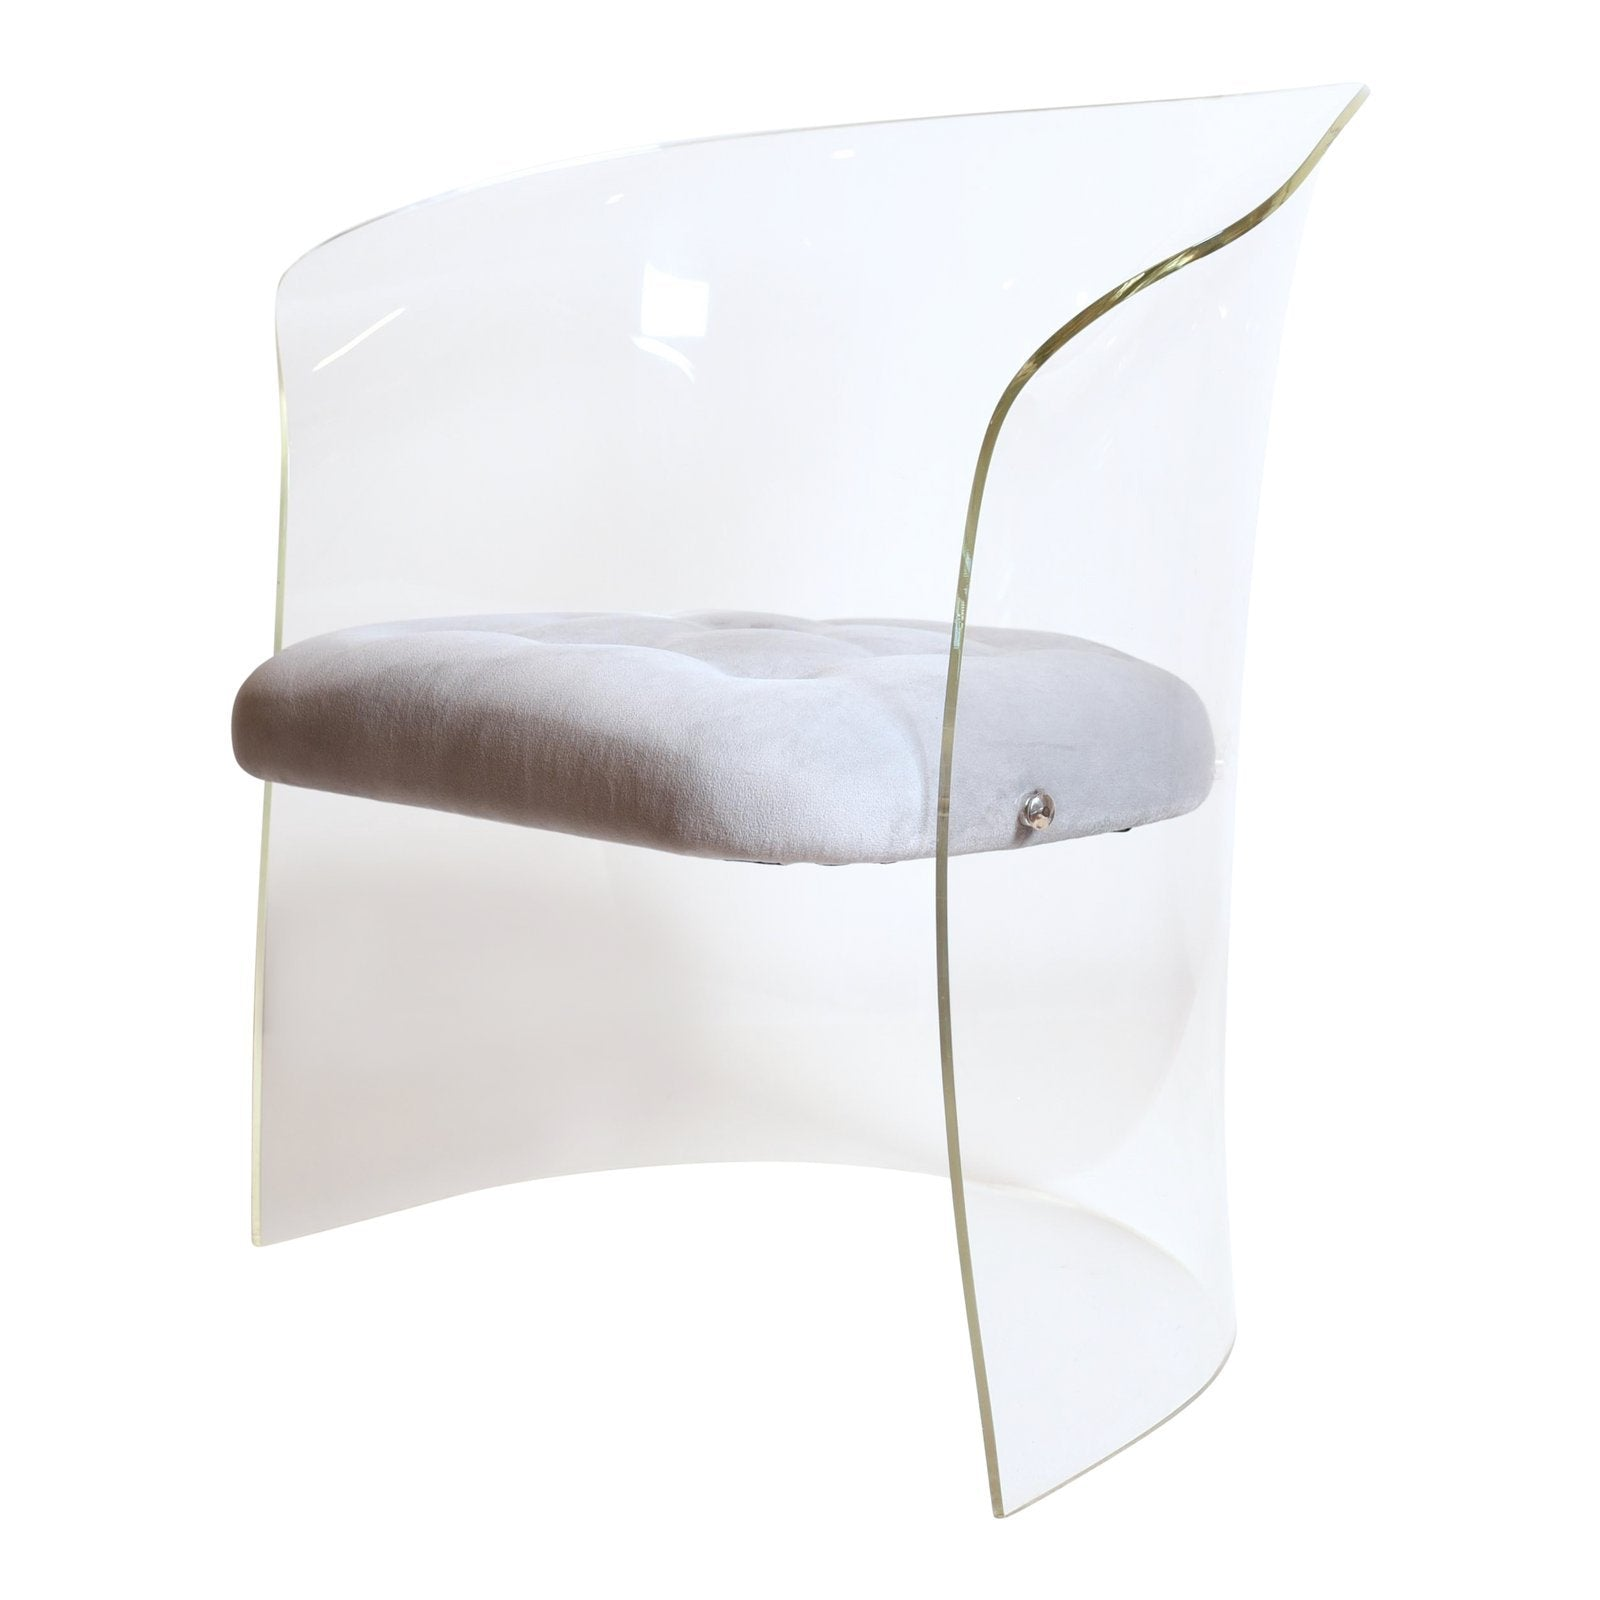 Vladimir Kagan Formed Lucite Chair, circa 1960s - The Exchange Int